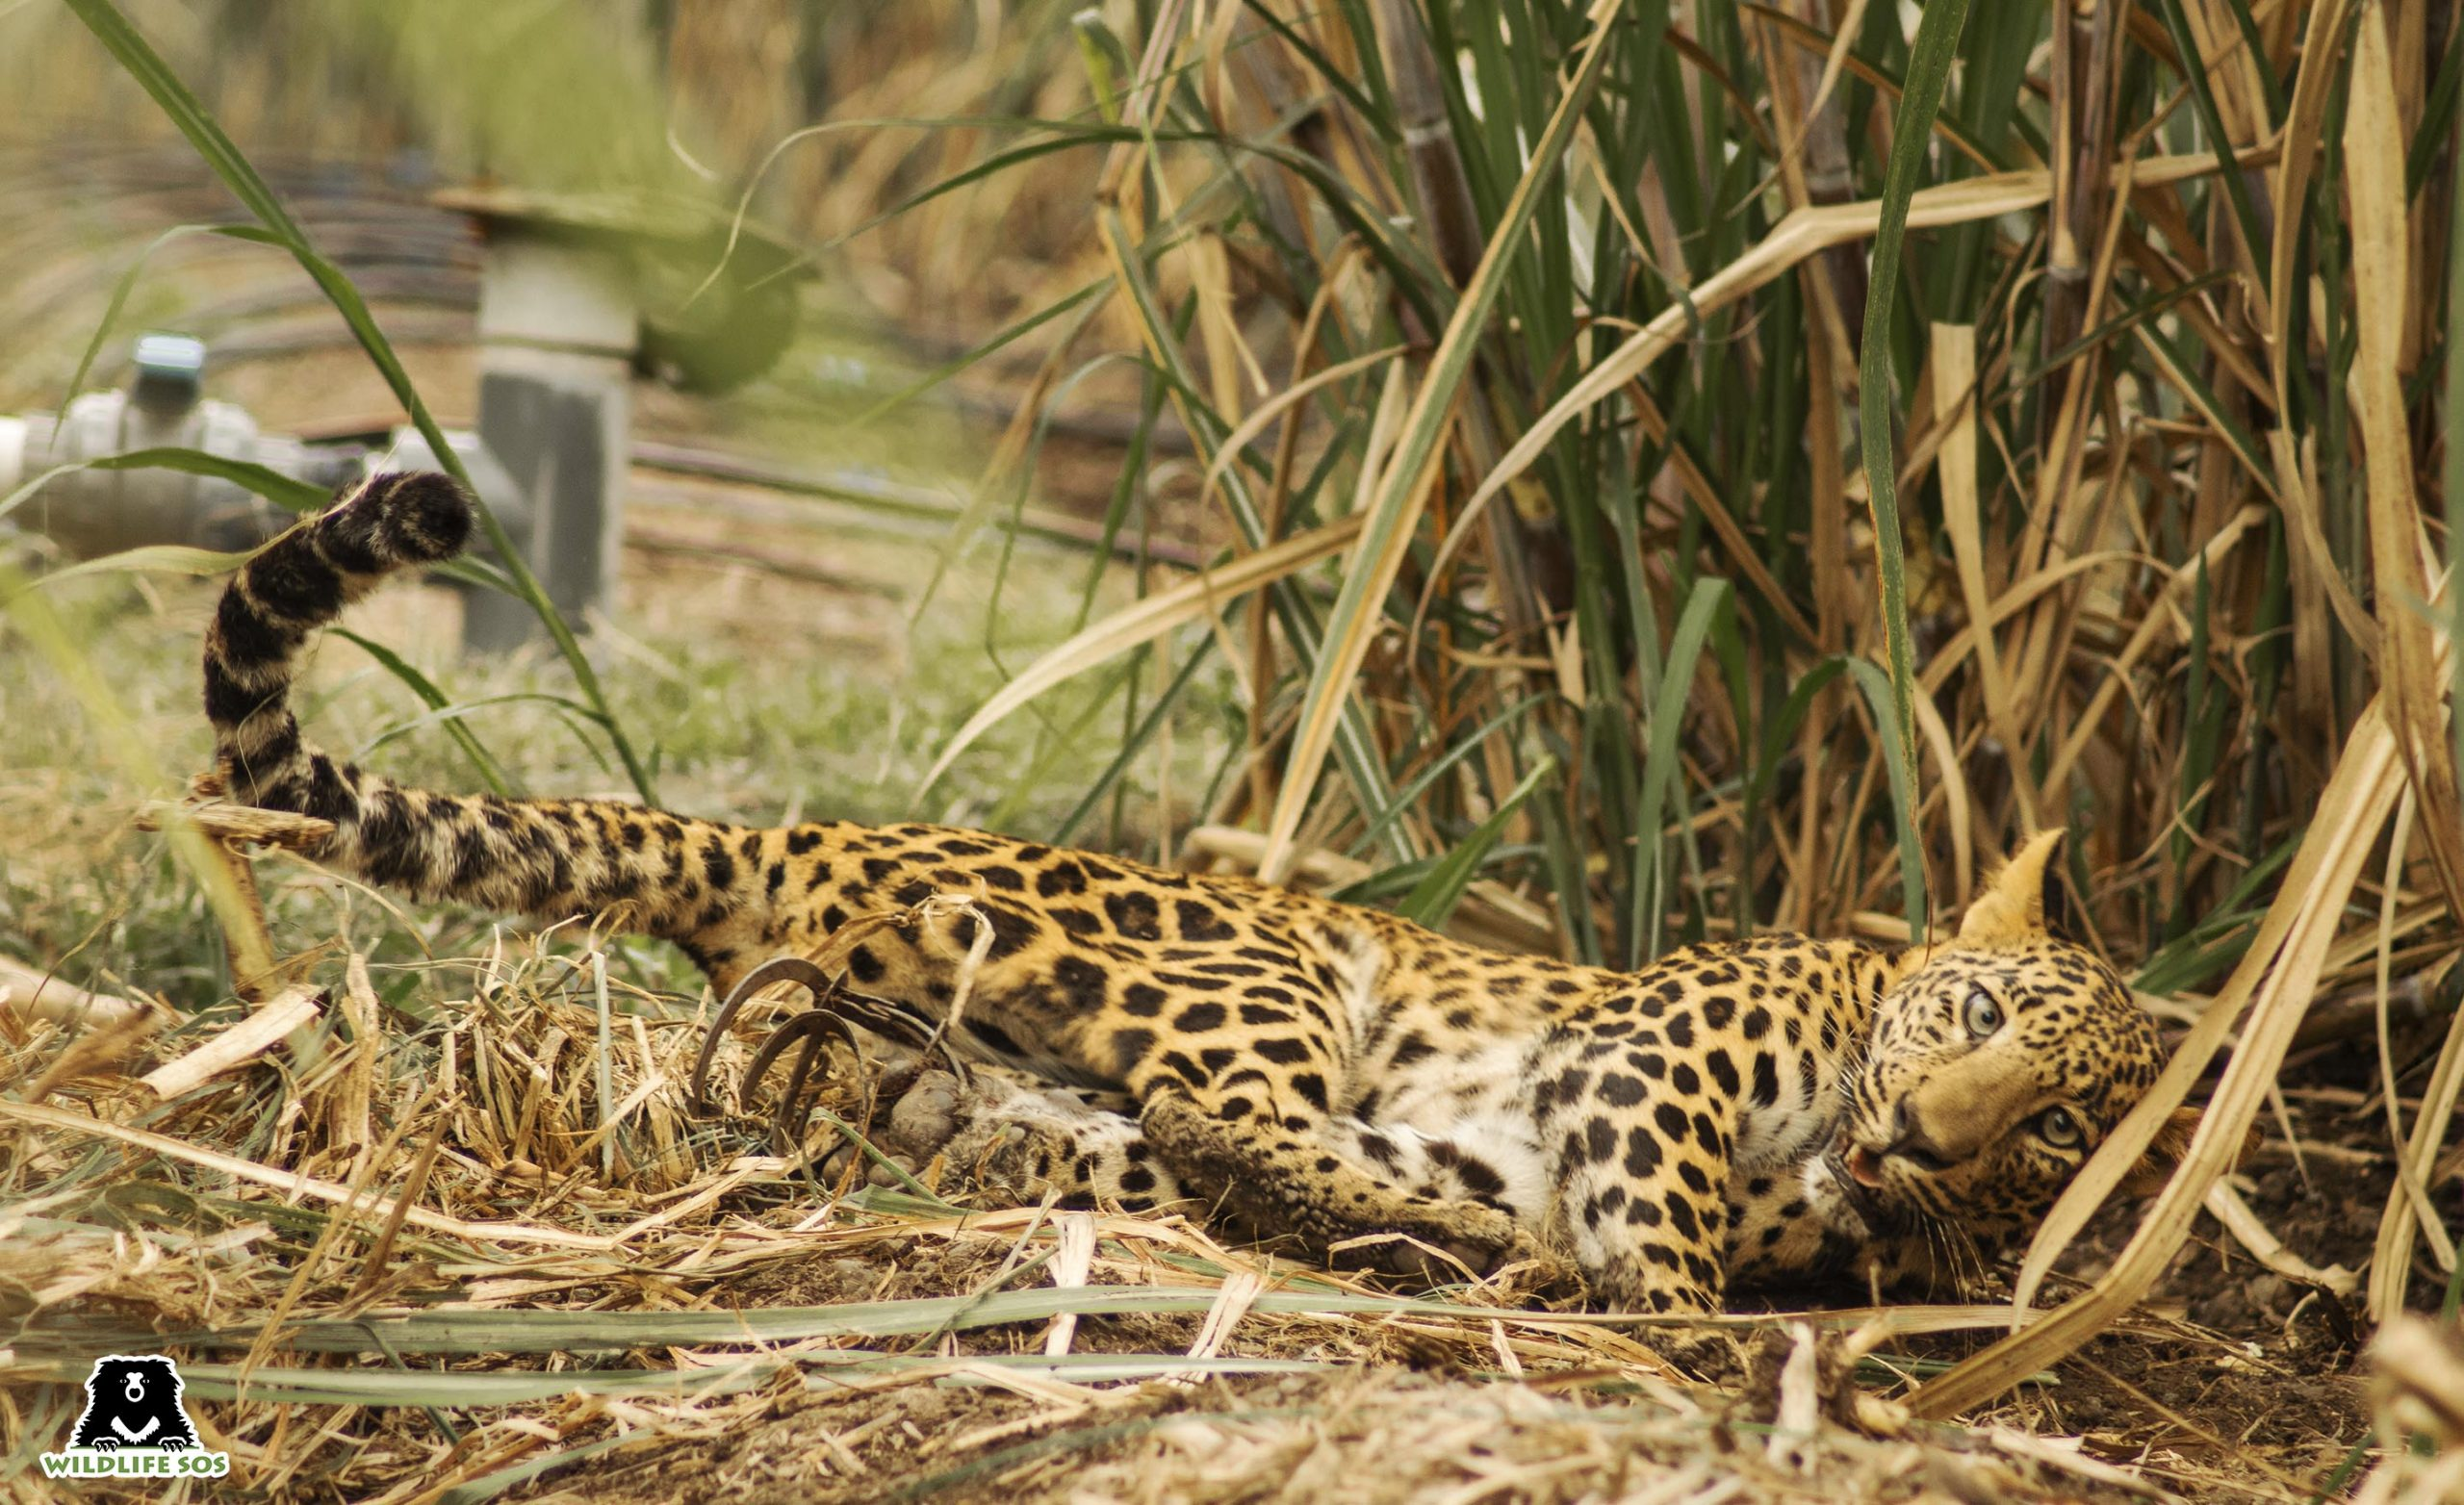 Wildlife SOS & the Forest Department rushed to the rescue of the leopard trapped in a jaw trap